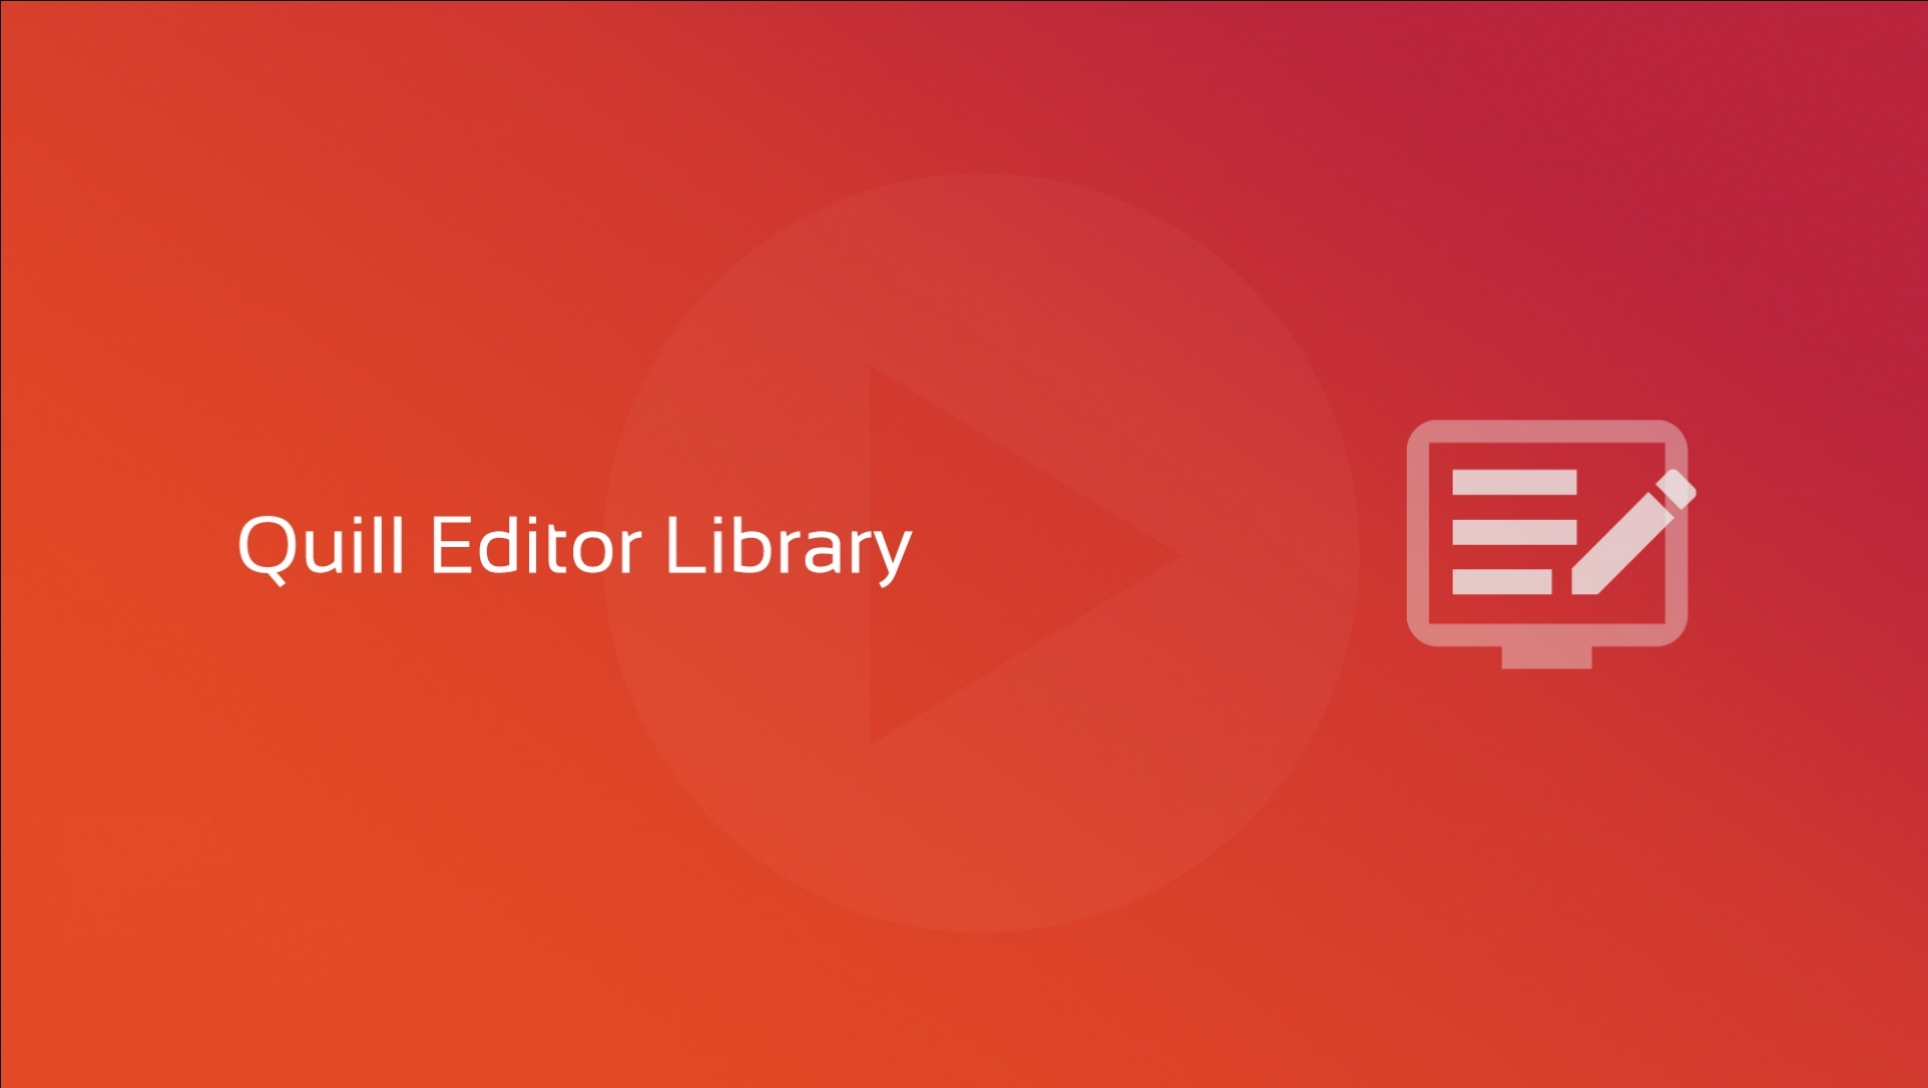 New video course: Quill Editor